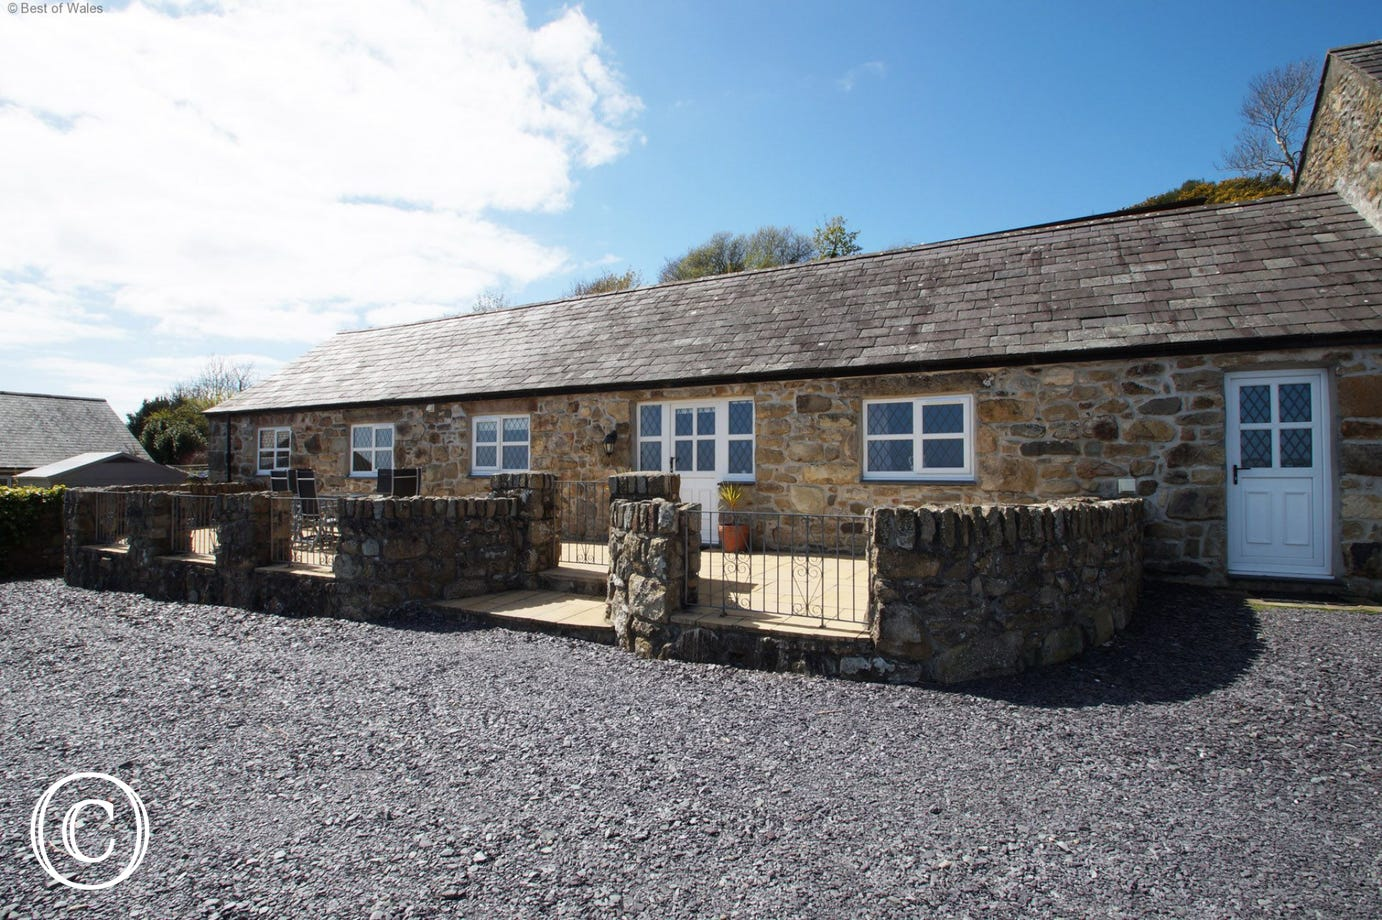 Abersoch Holiday Cottages, North Wales - Stabal y March